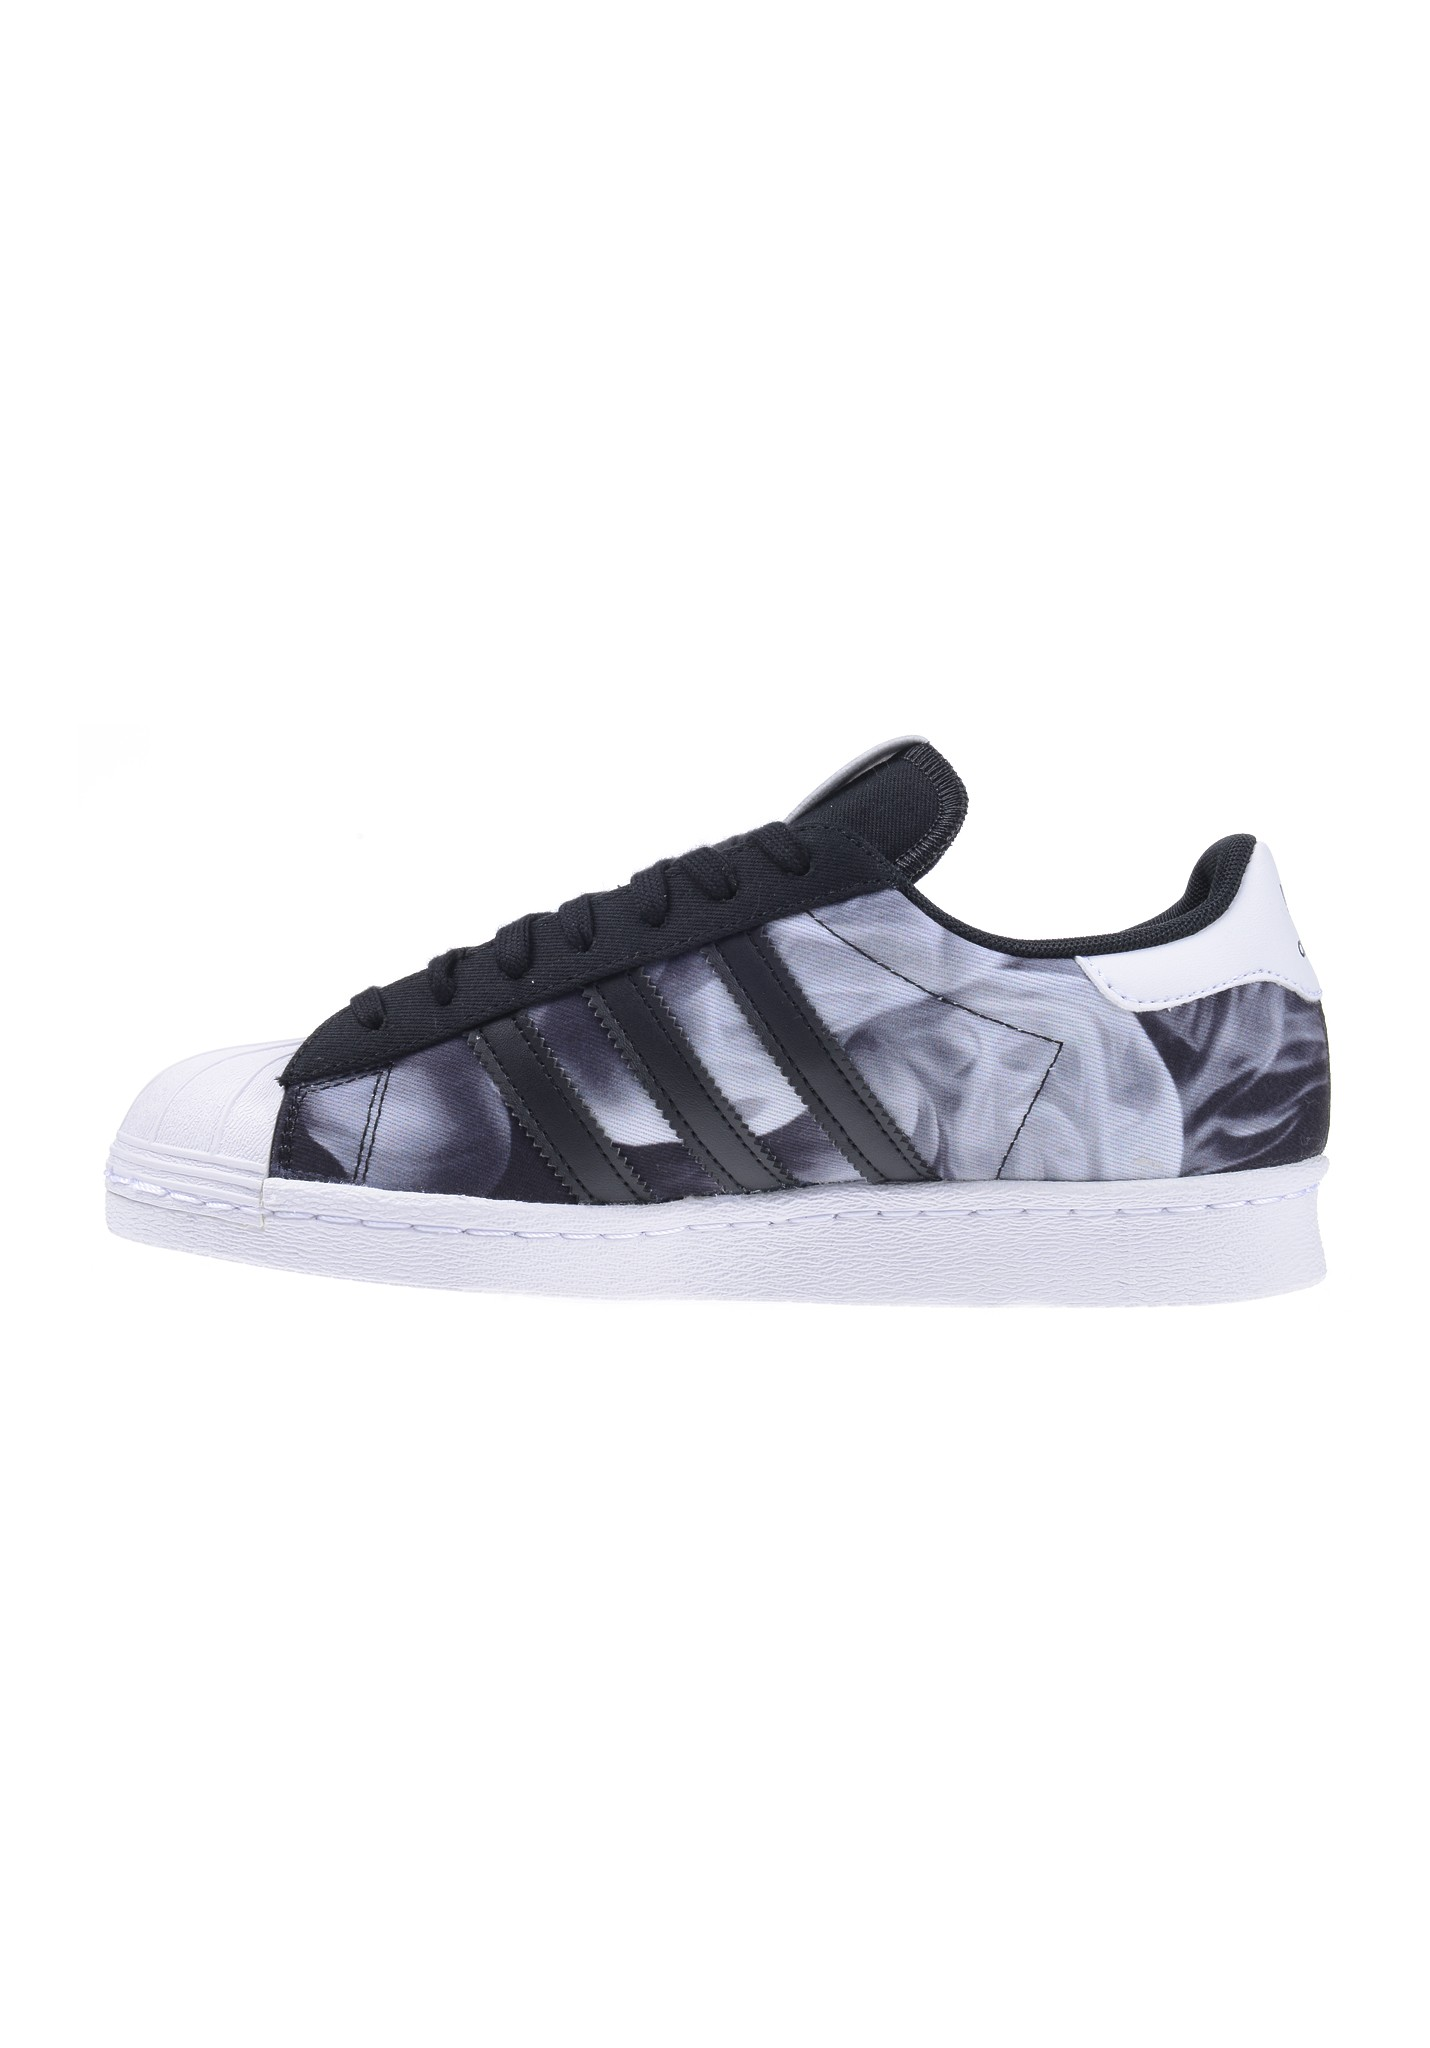 neu adidas superstar 80s damen sneaker turnschuhe freizeit schuhe sneakers ebay. Black Bedroom Furniture Sets. Home Design Ideas